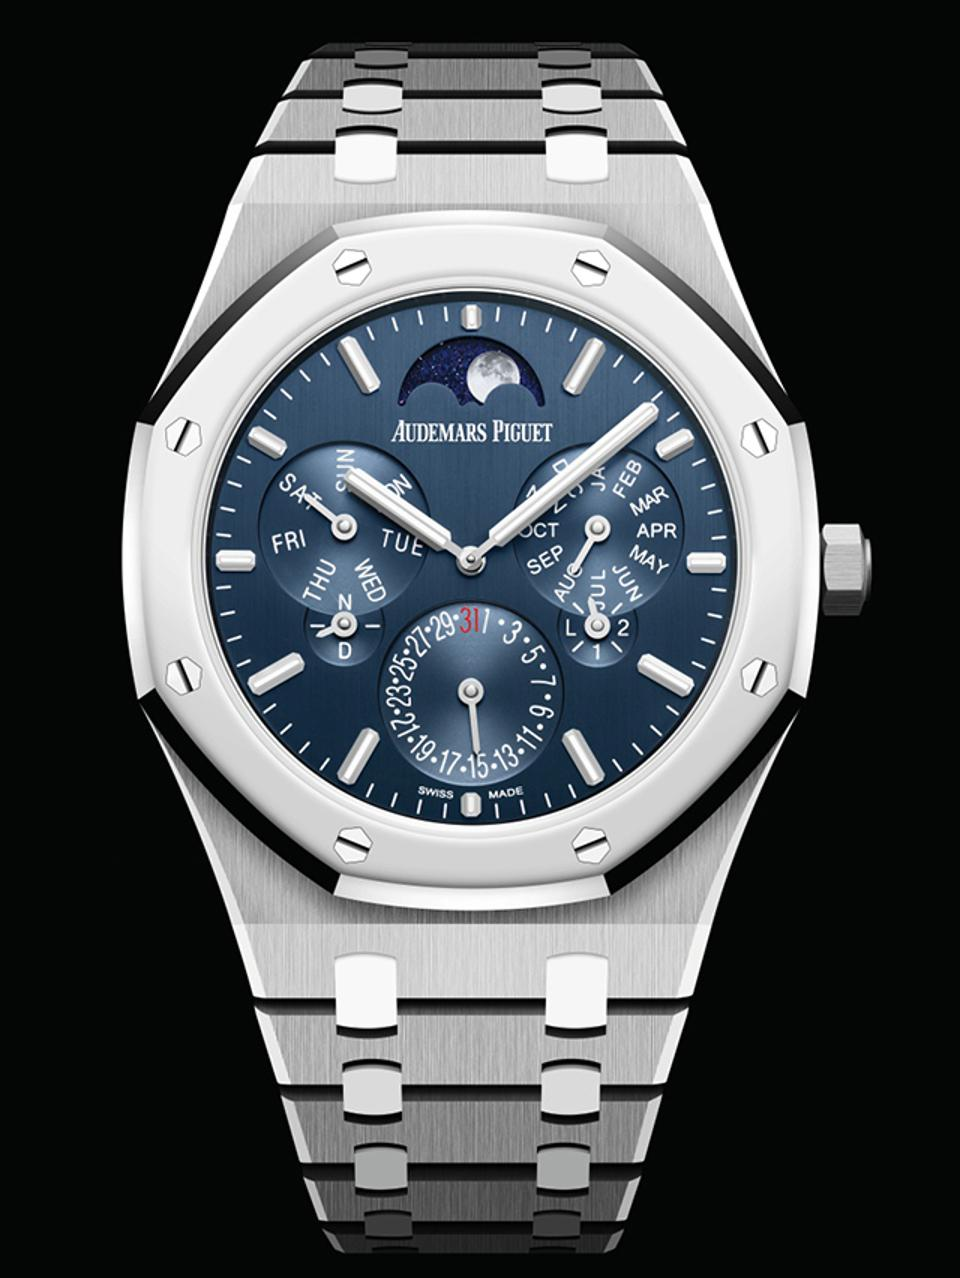 The Grand Prize, called the Aiguille d'Or, went to Audemars Piguet for the Royal Oak Selfwinding Perpetual Calendar Ultra-Thin